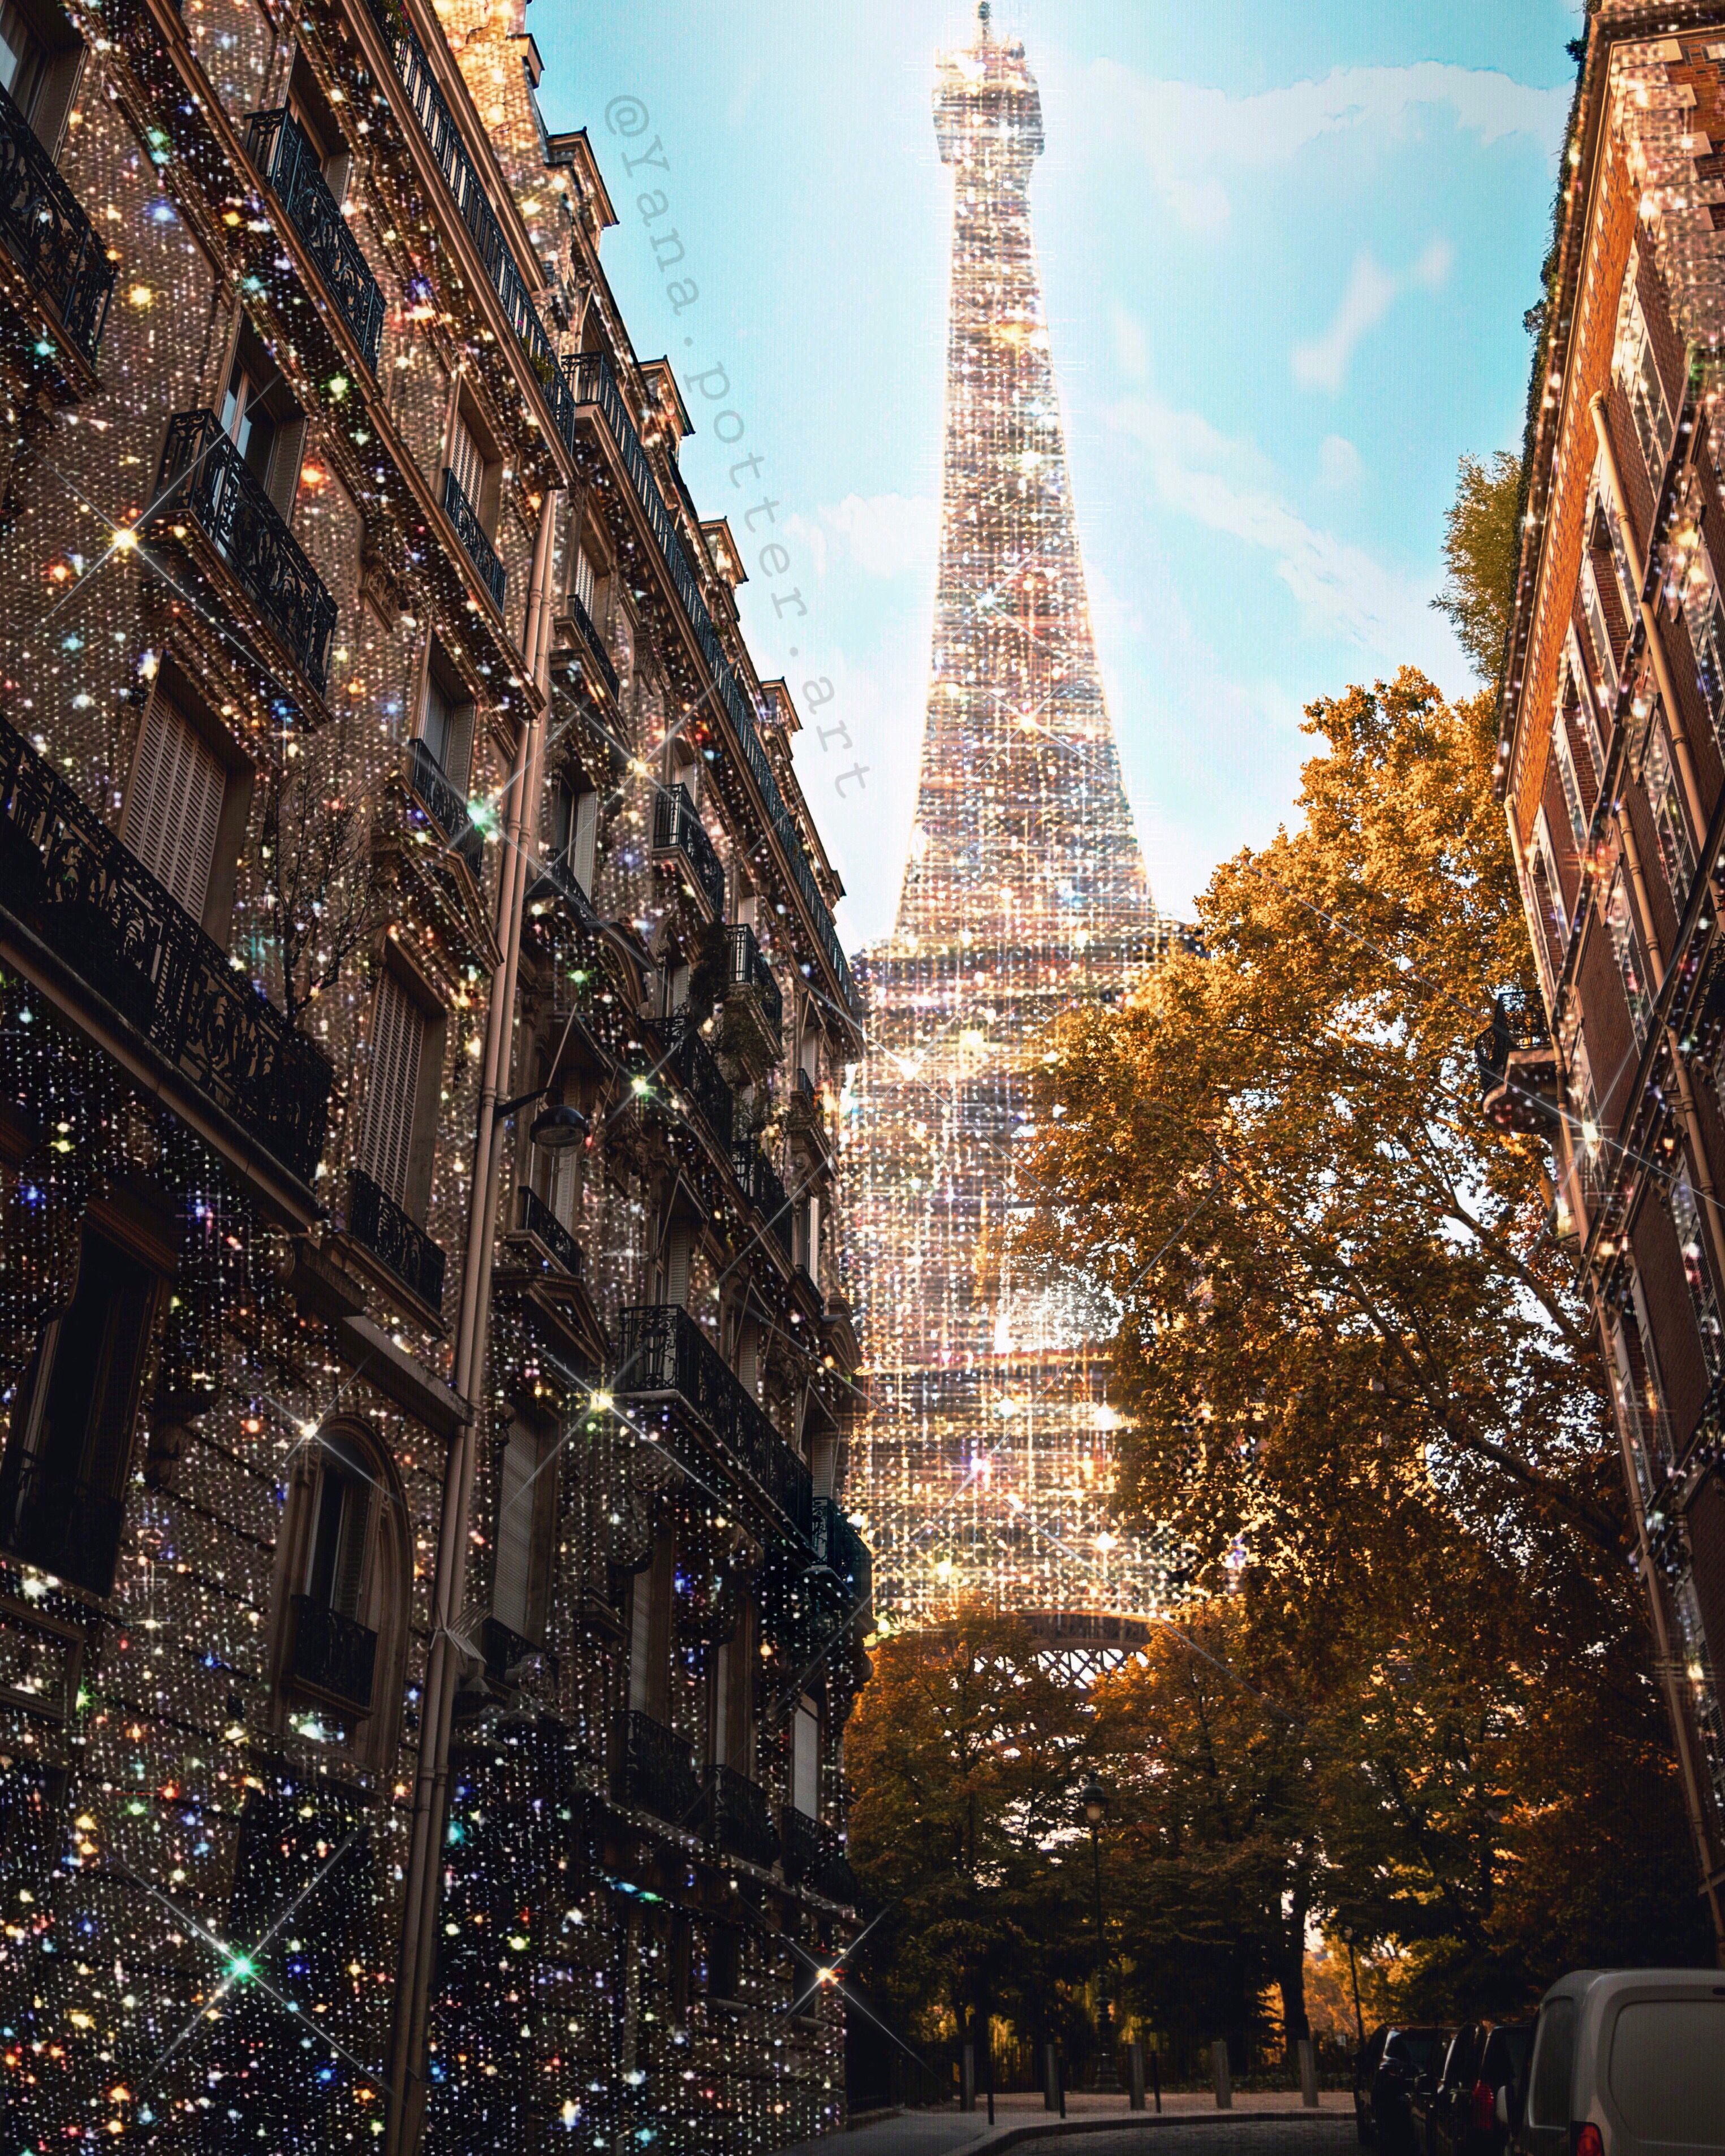 Paris Aesthetic Backgrounds Glitter Photography Aesthetic Pictures